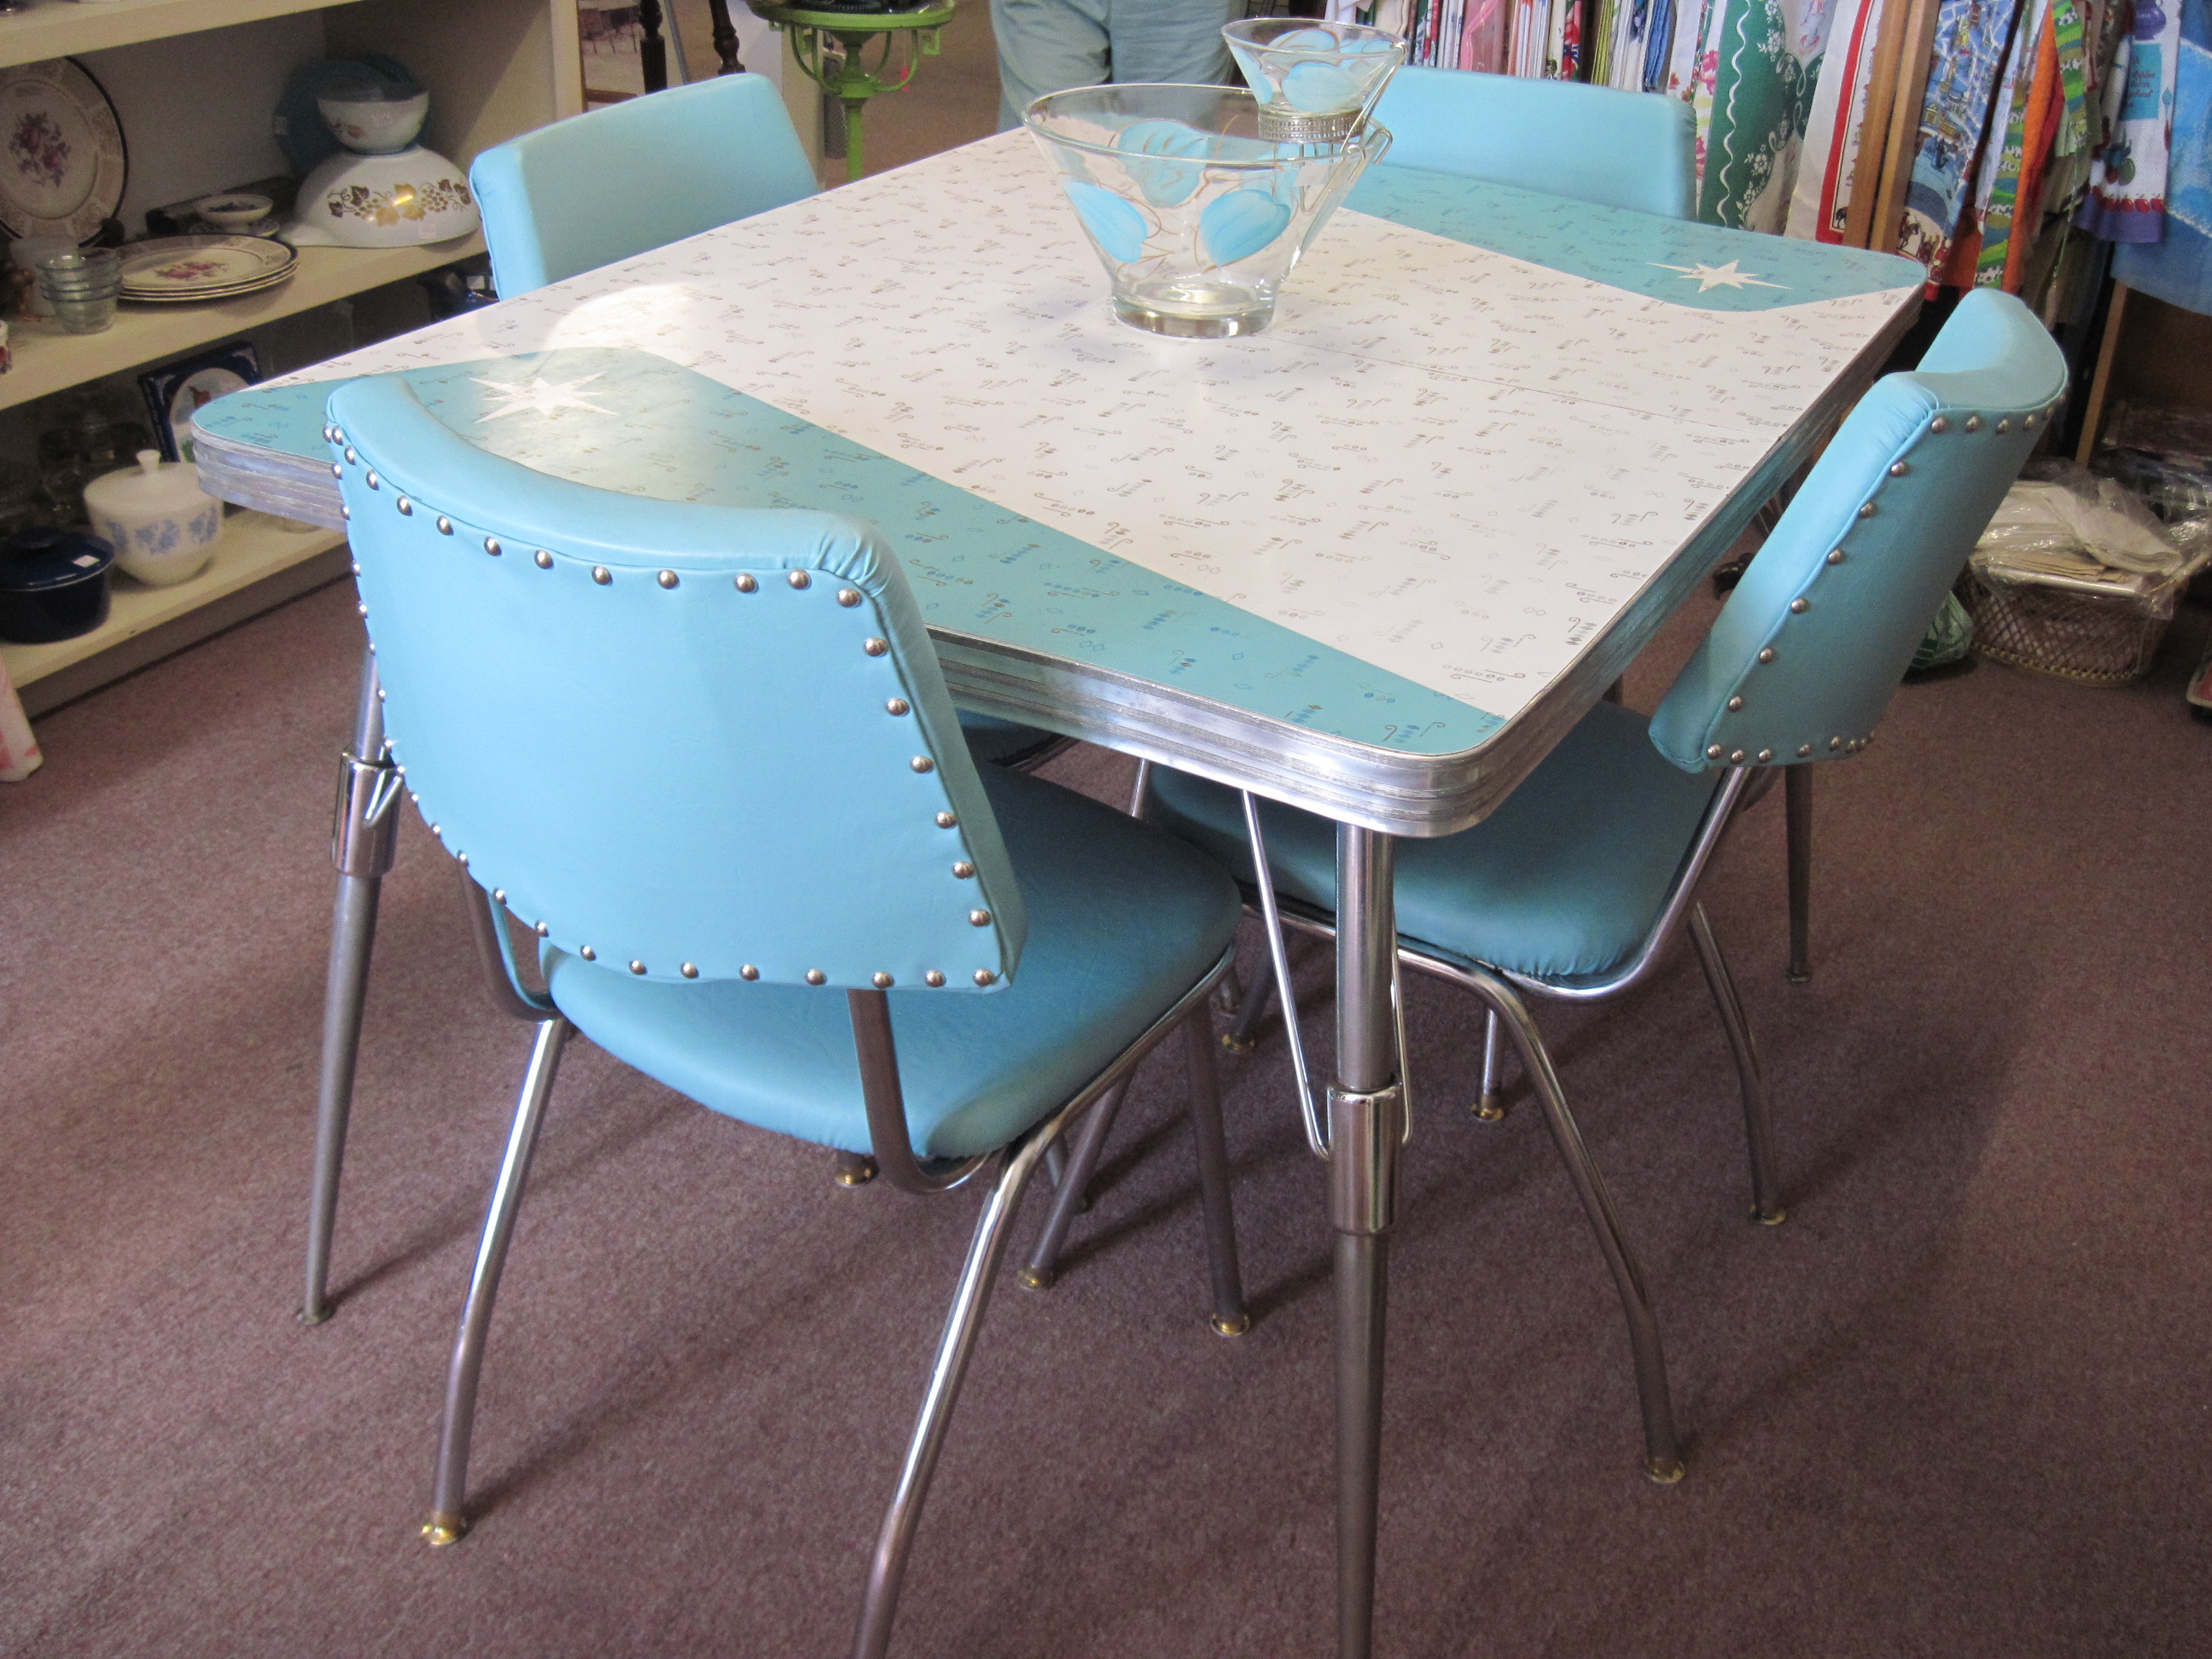 Retro Vintage Formica Table and Chairs fabfindsblog : img2286 from fabfindsblog.com size 2592 x 1944 jpeg 1333kB